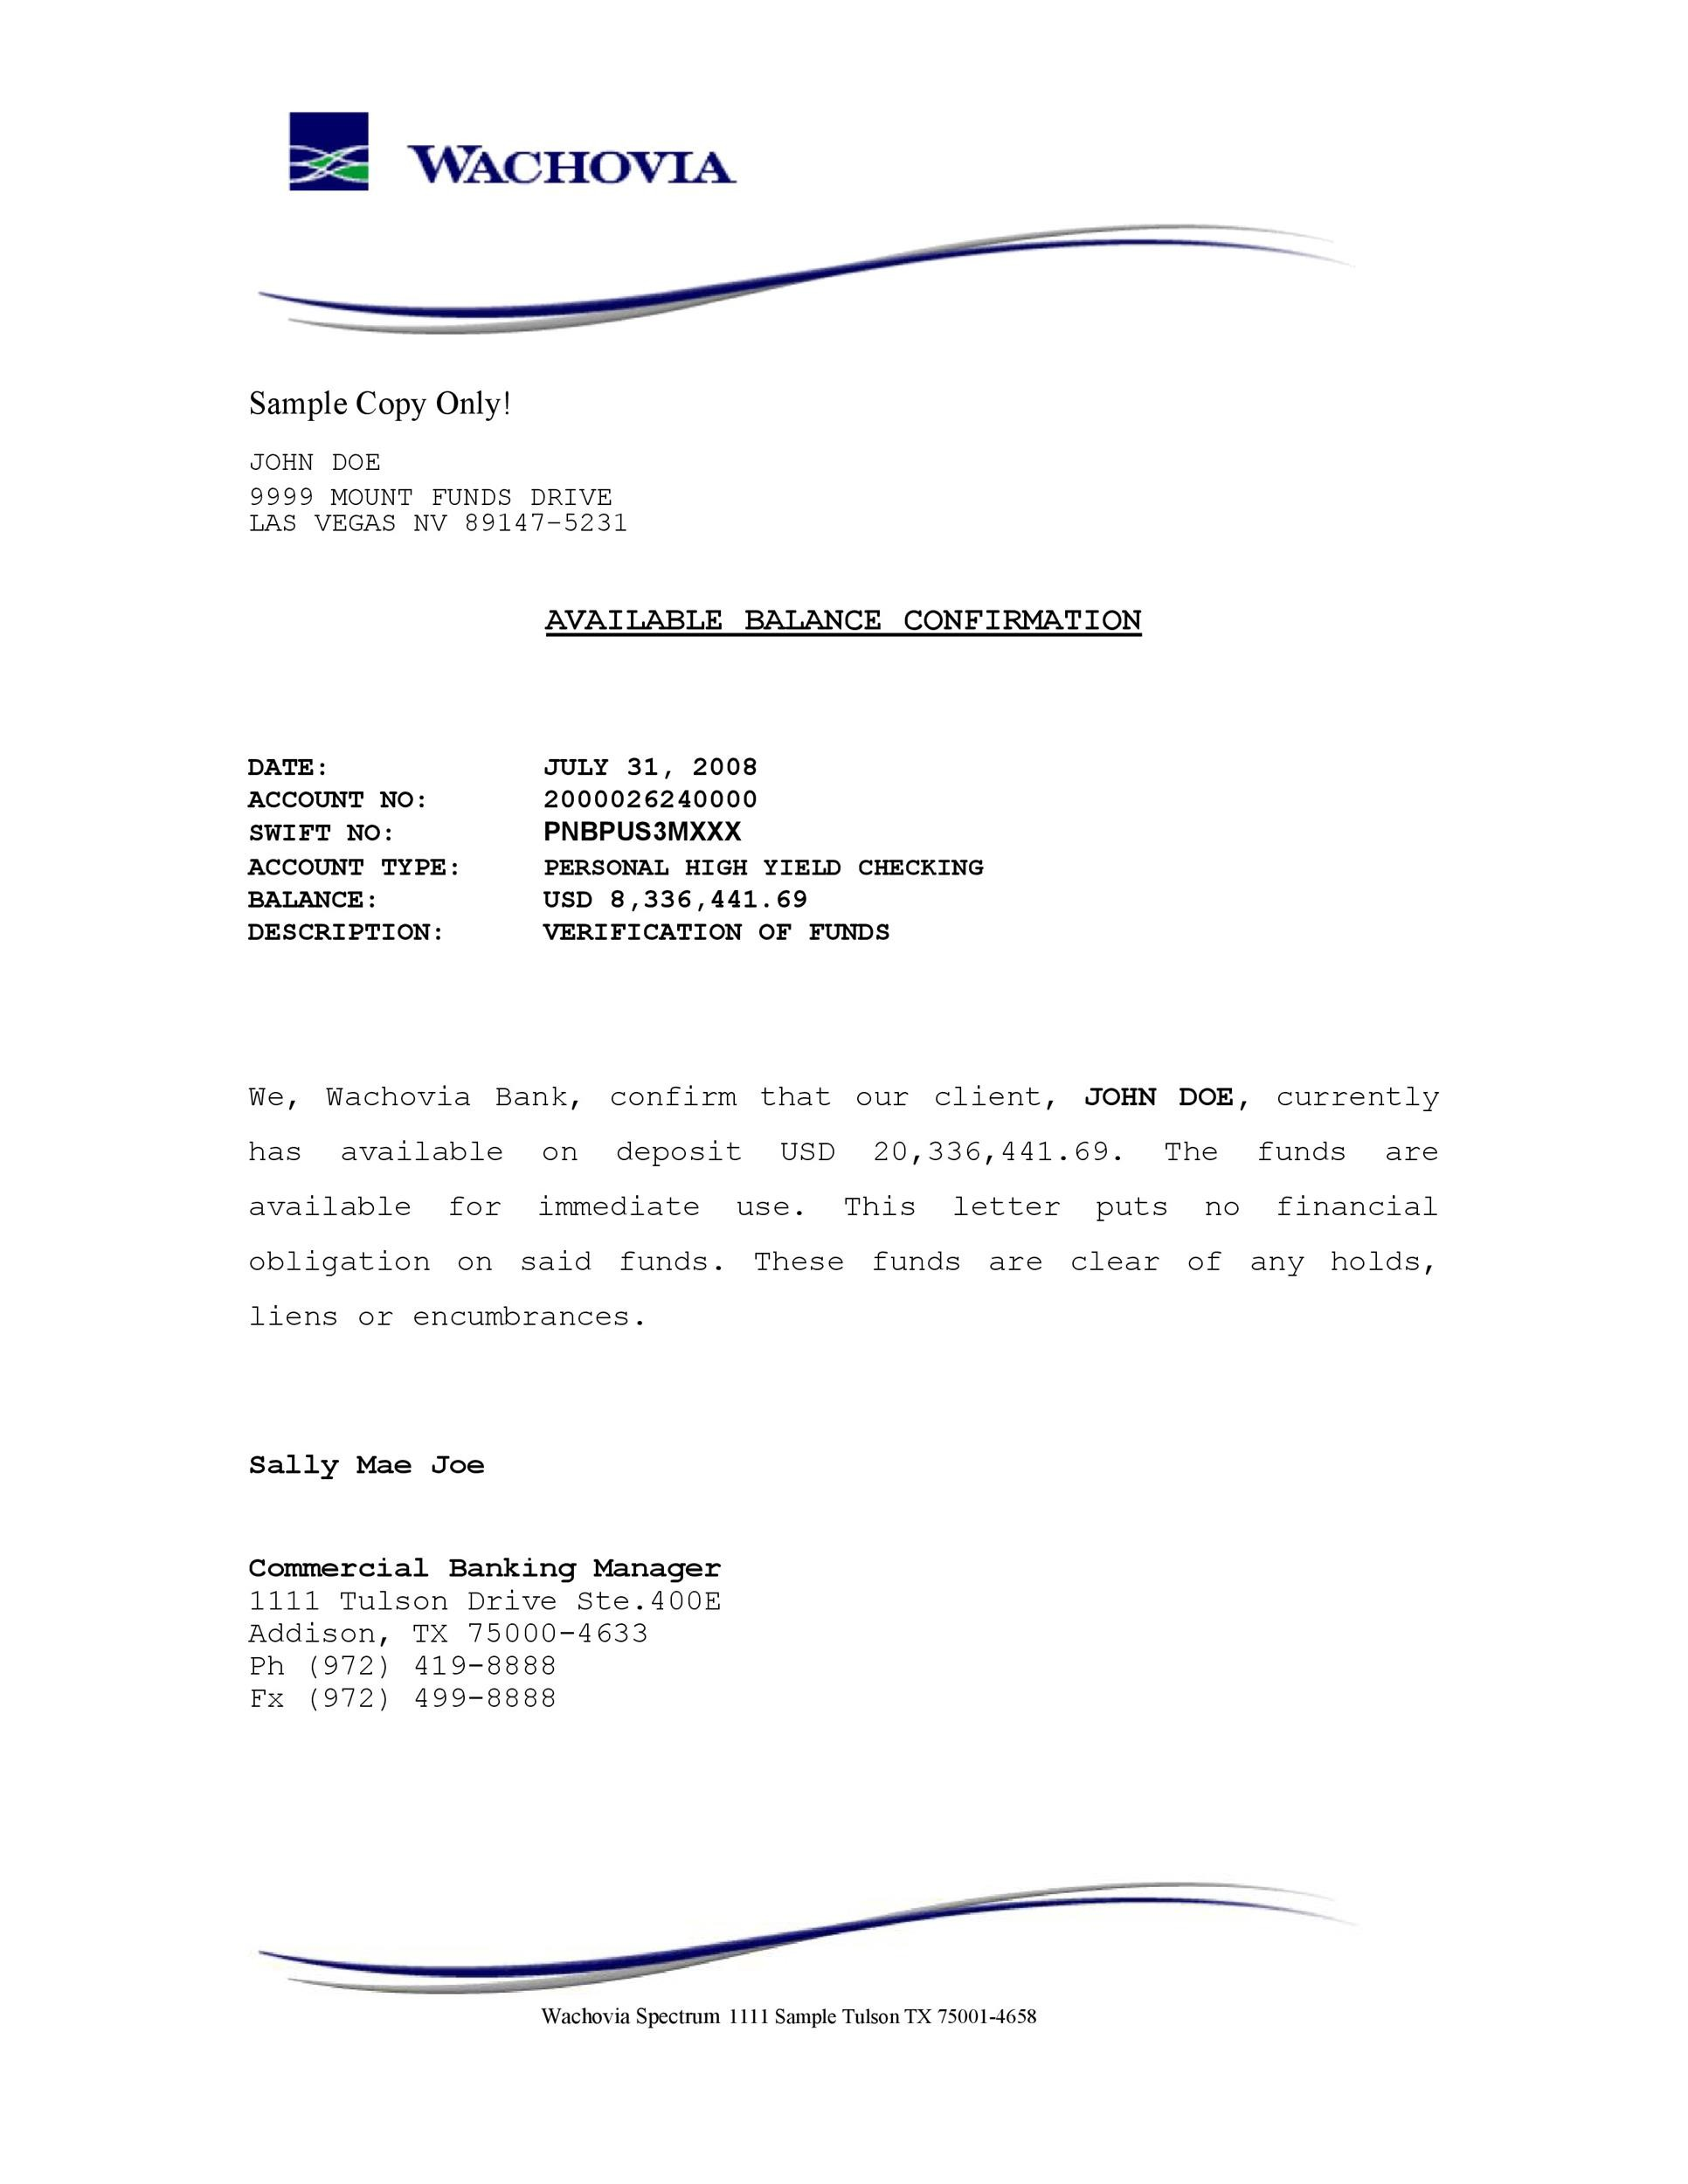 Bank letter goalblockety bank letter altavistaventures Images